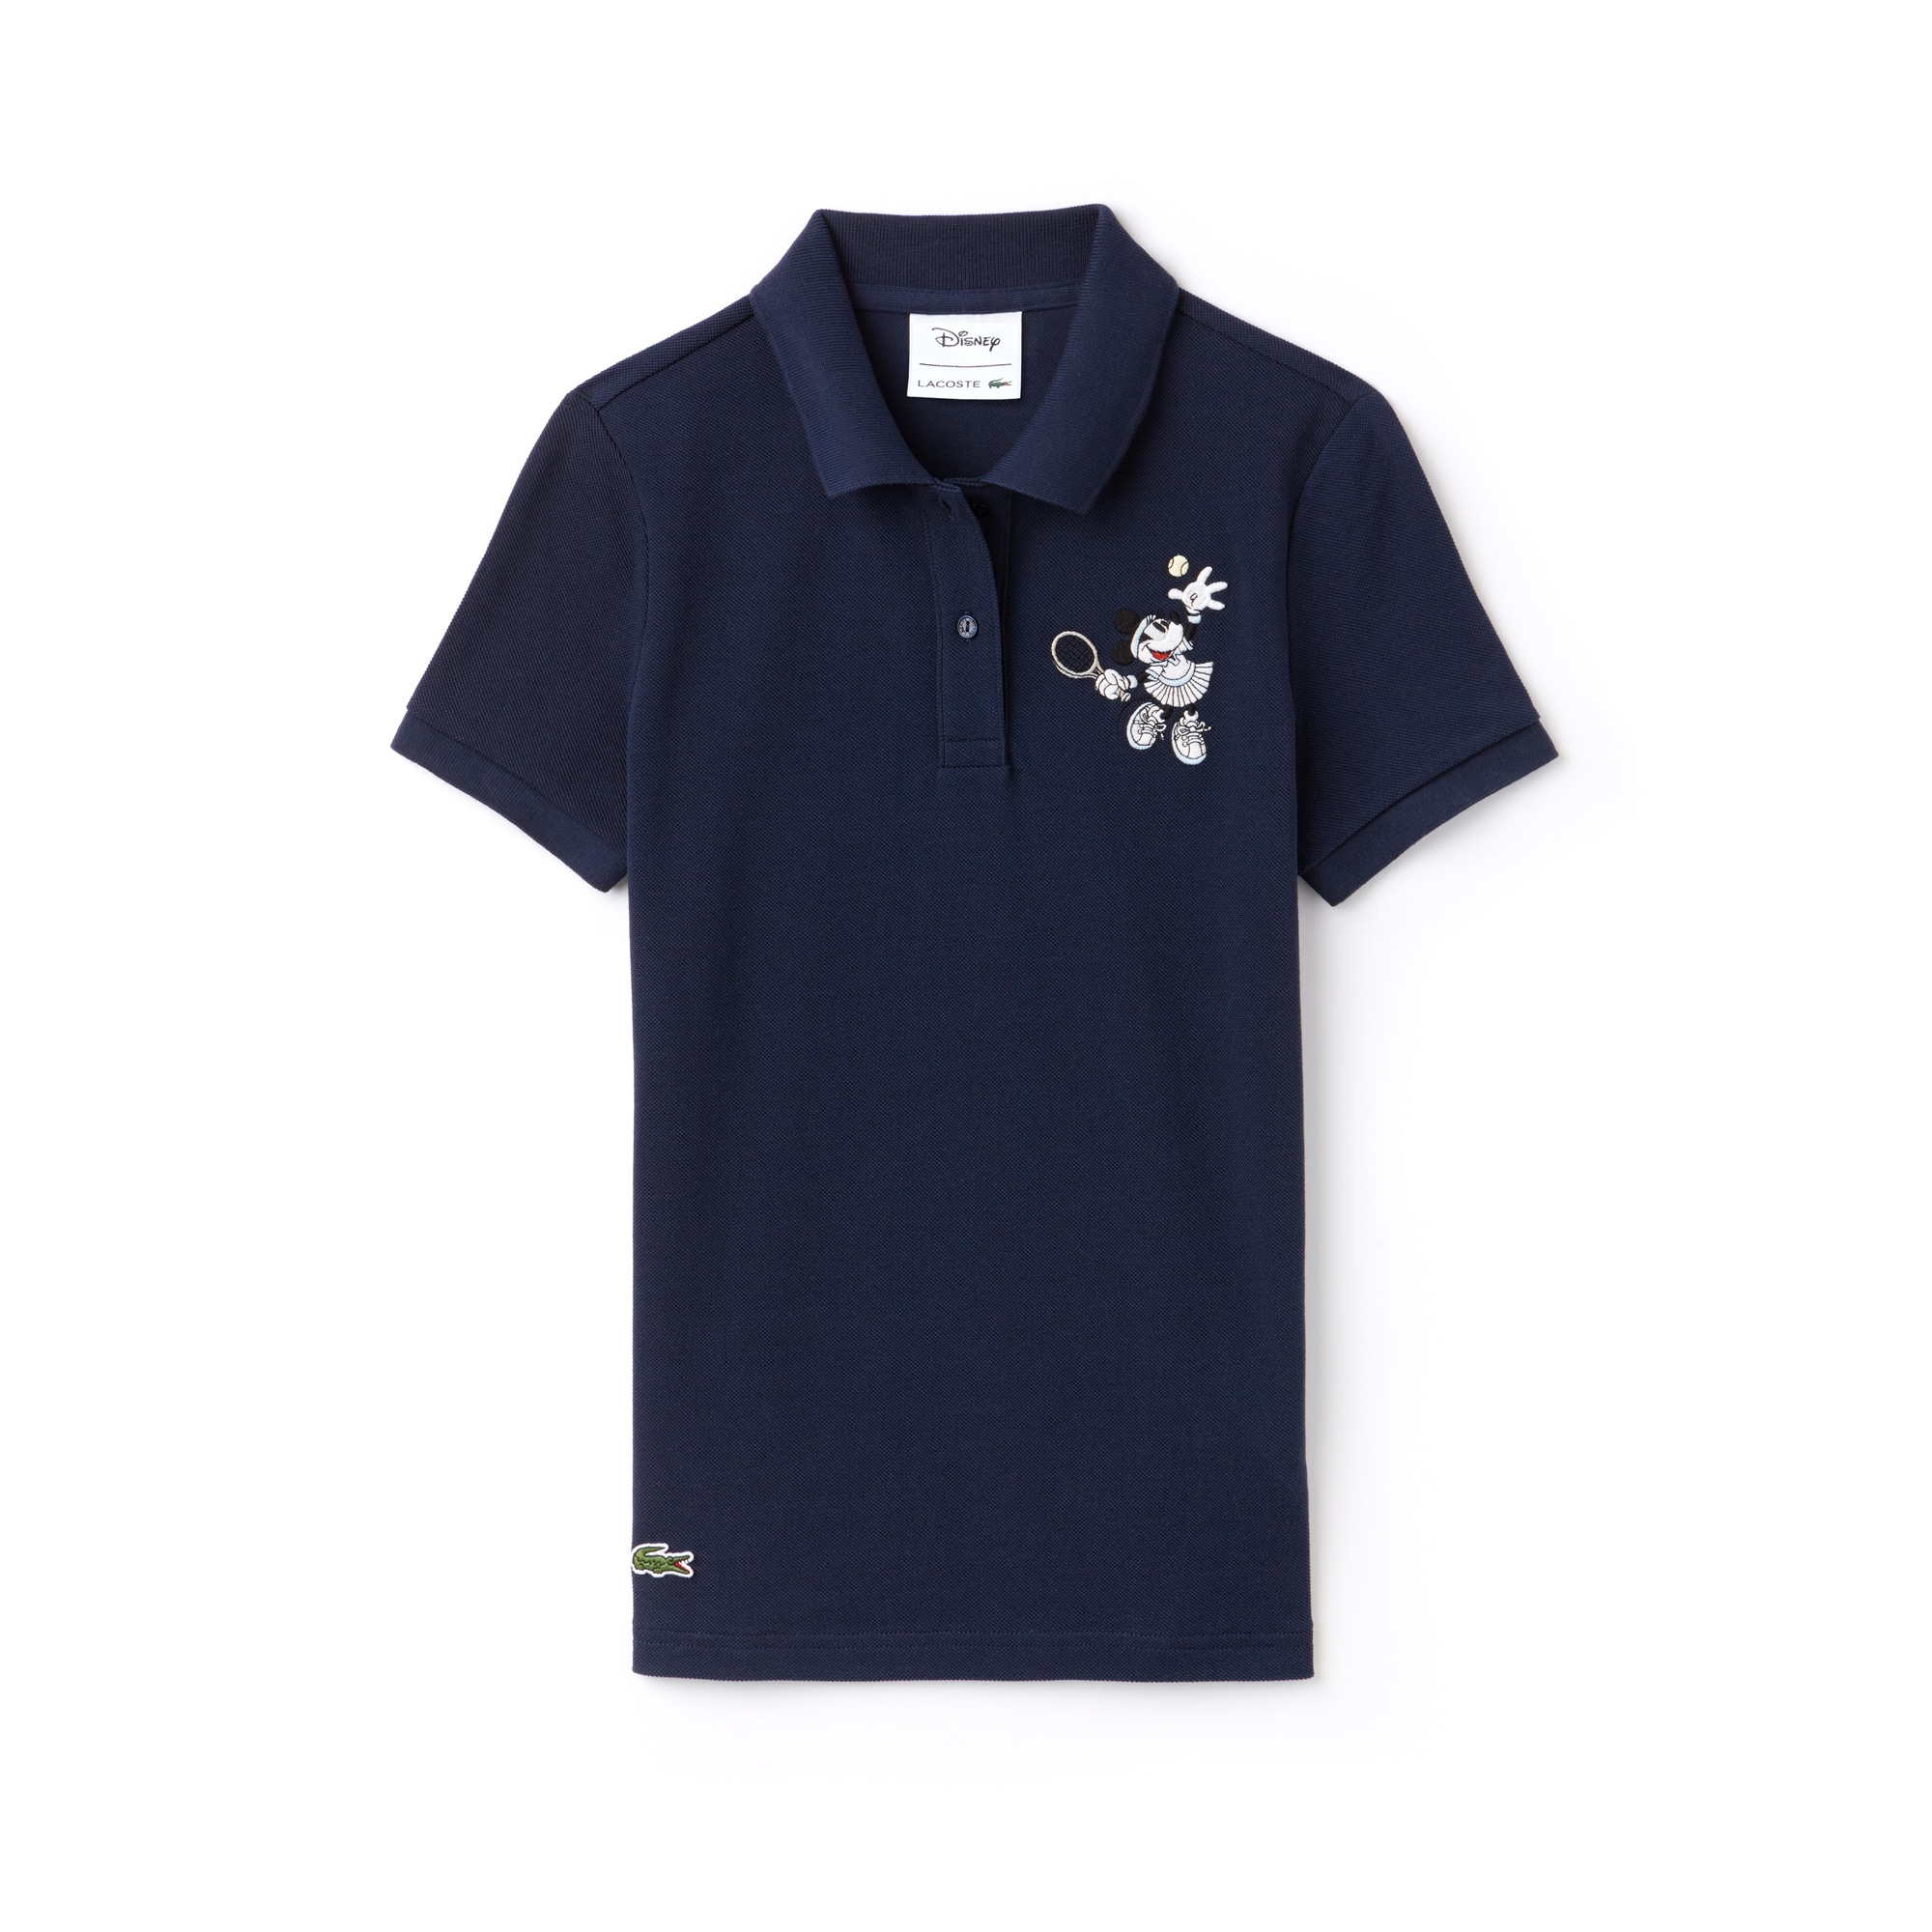 b3b34bf27b + 1 color. Disney | LACOSTE